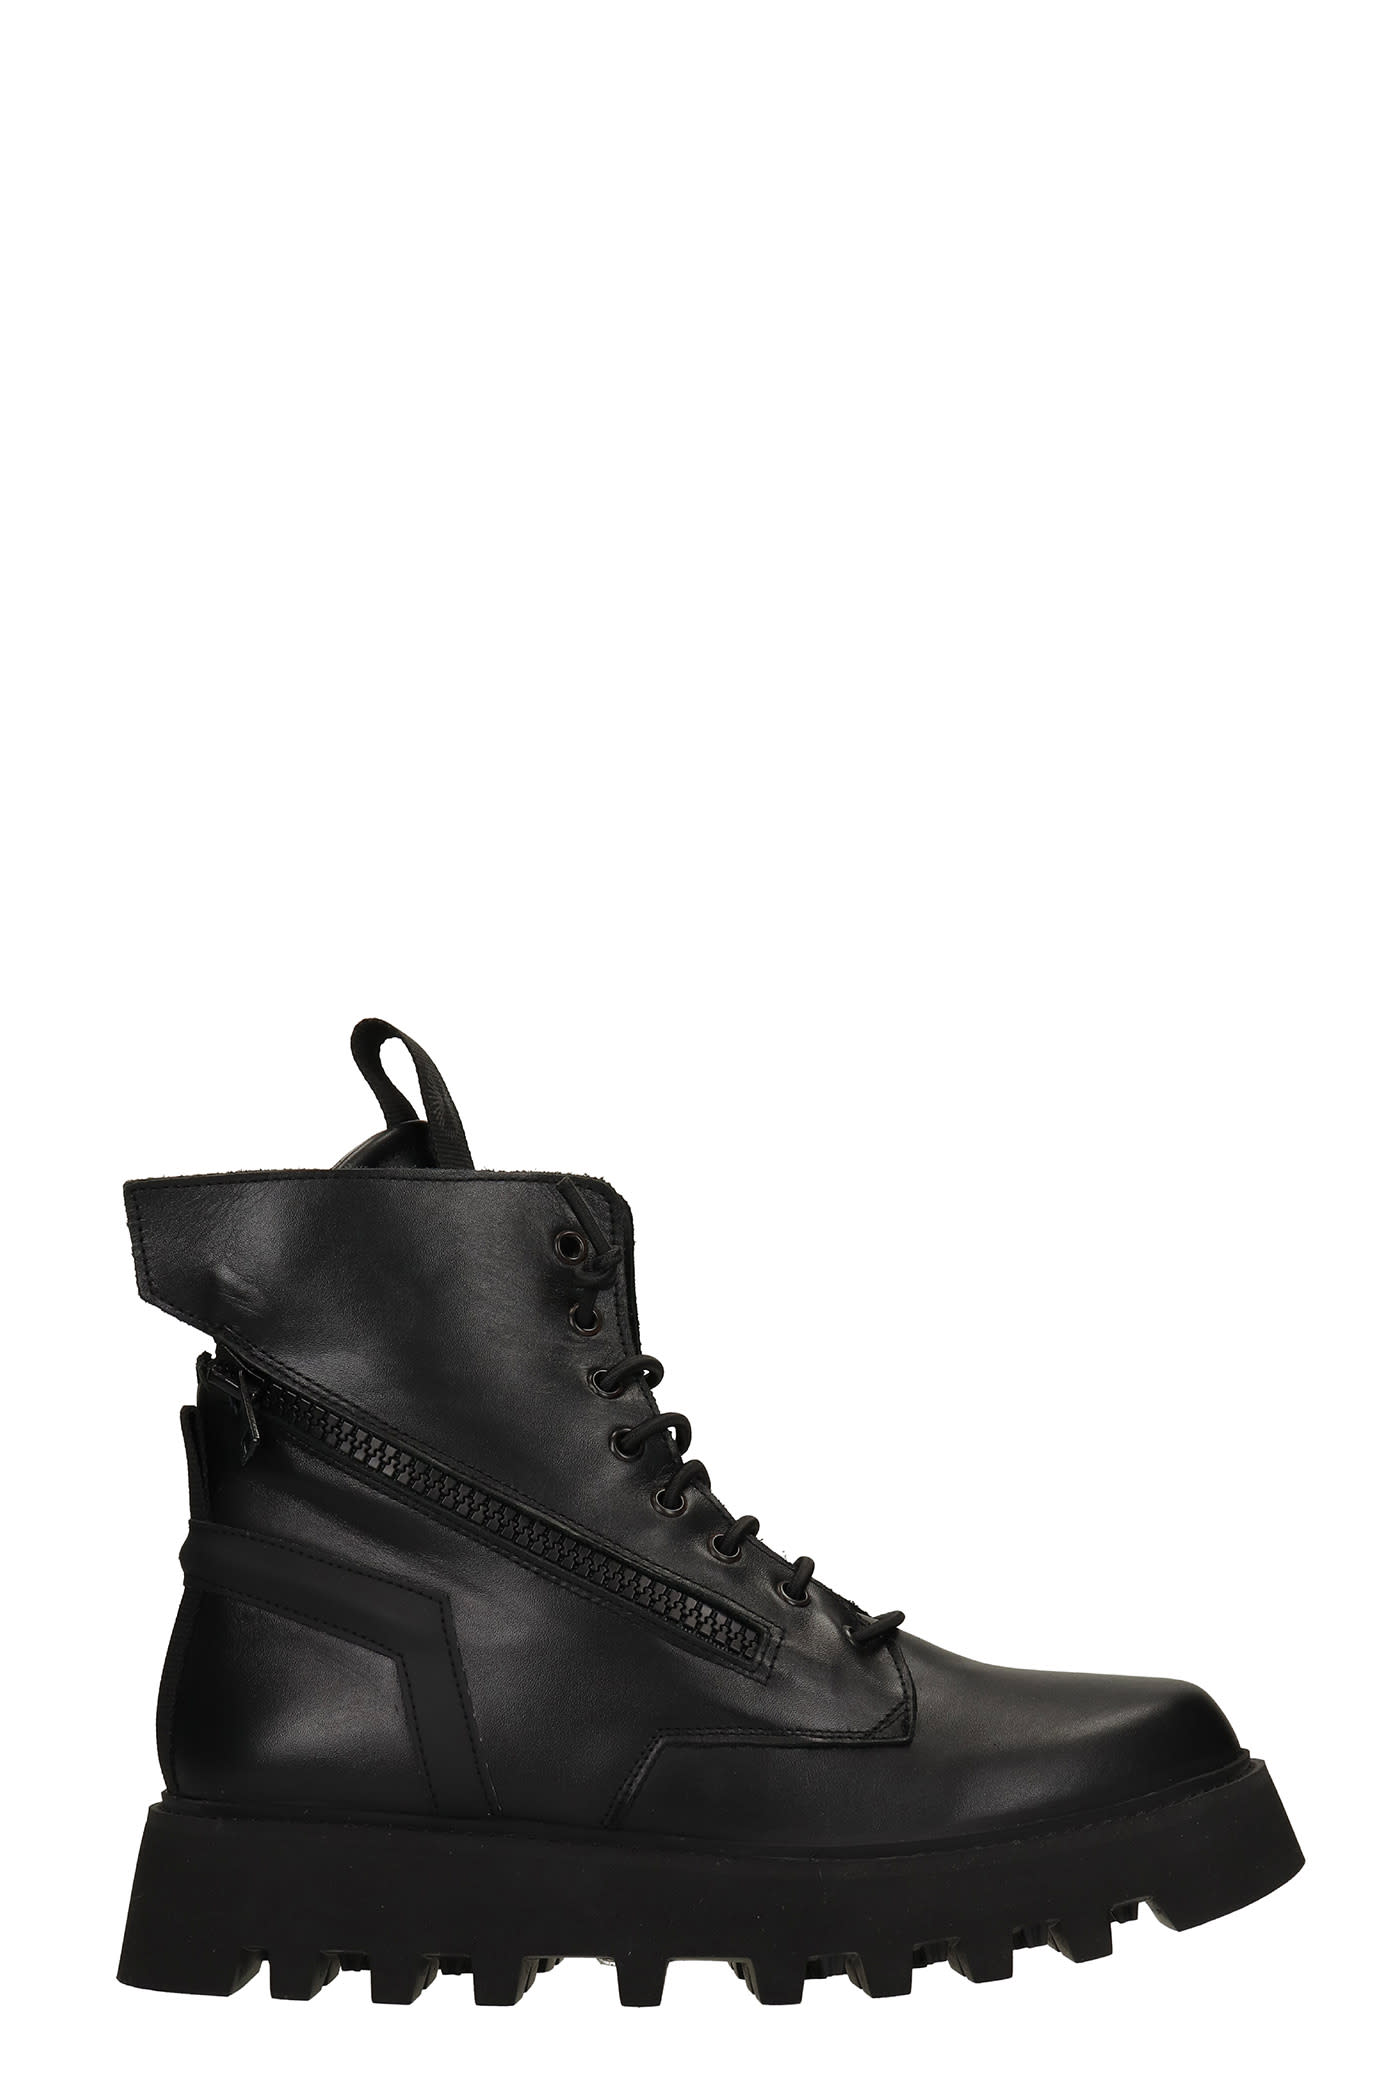 Doc Combat Boots In Black Leather